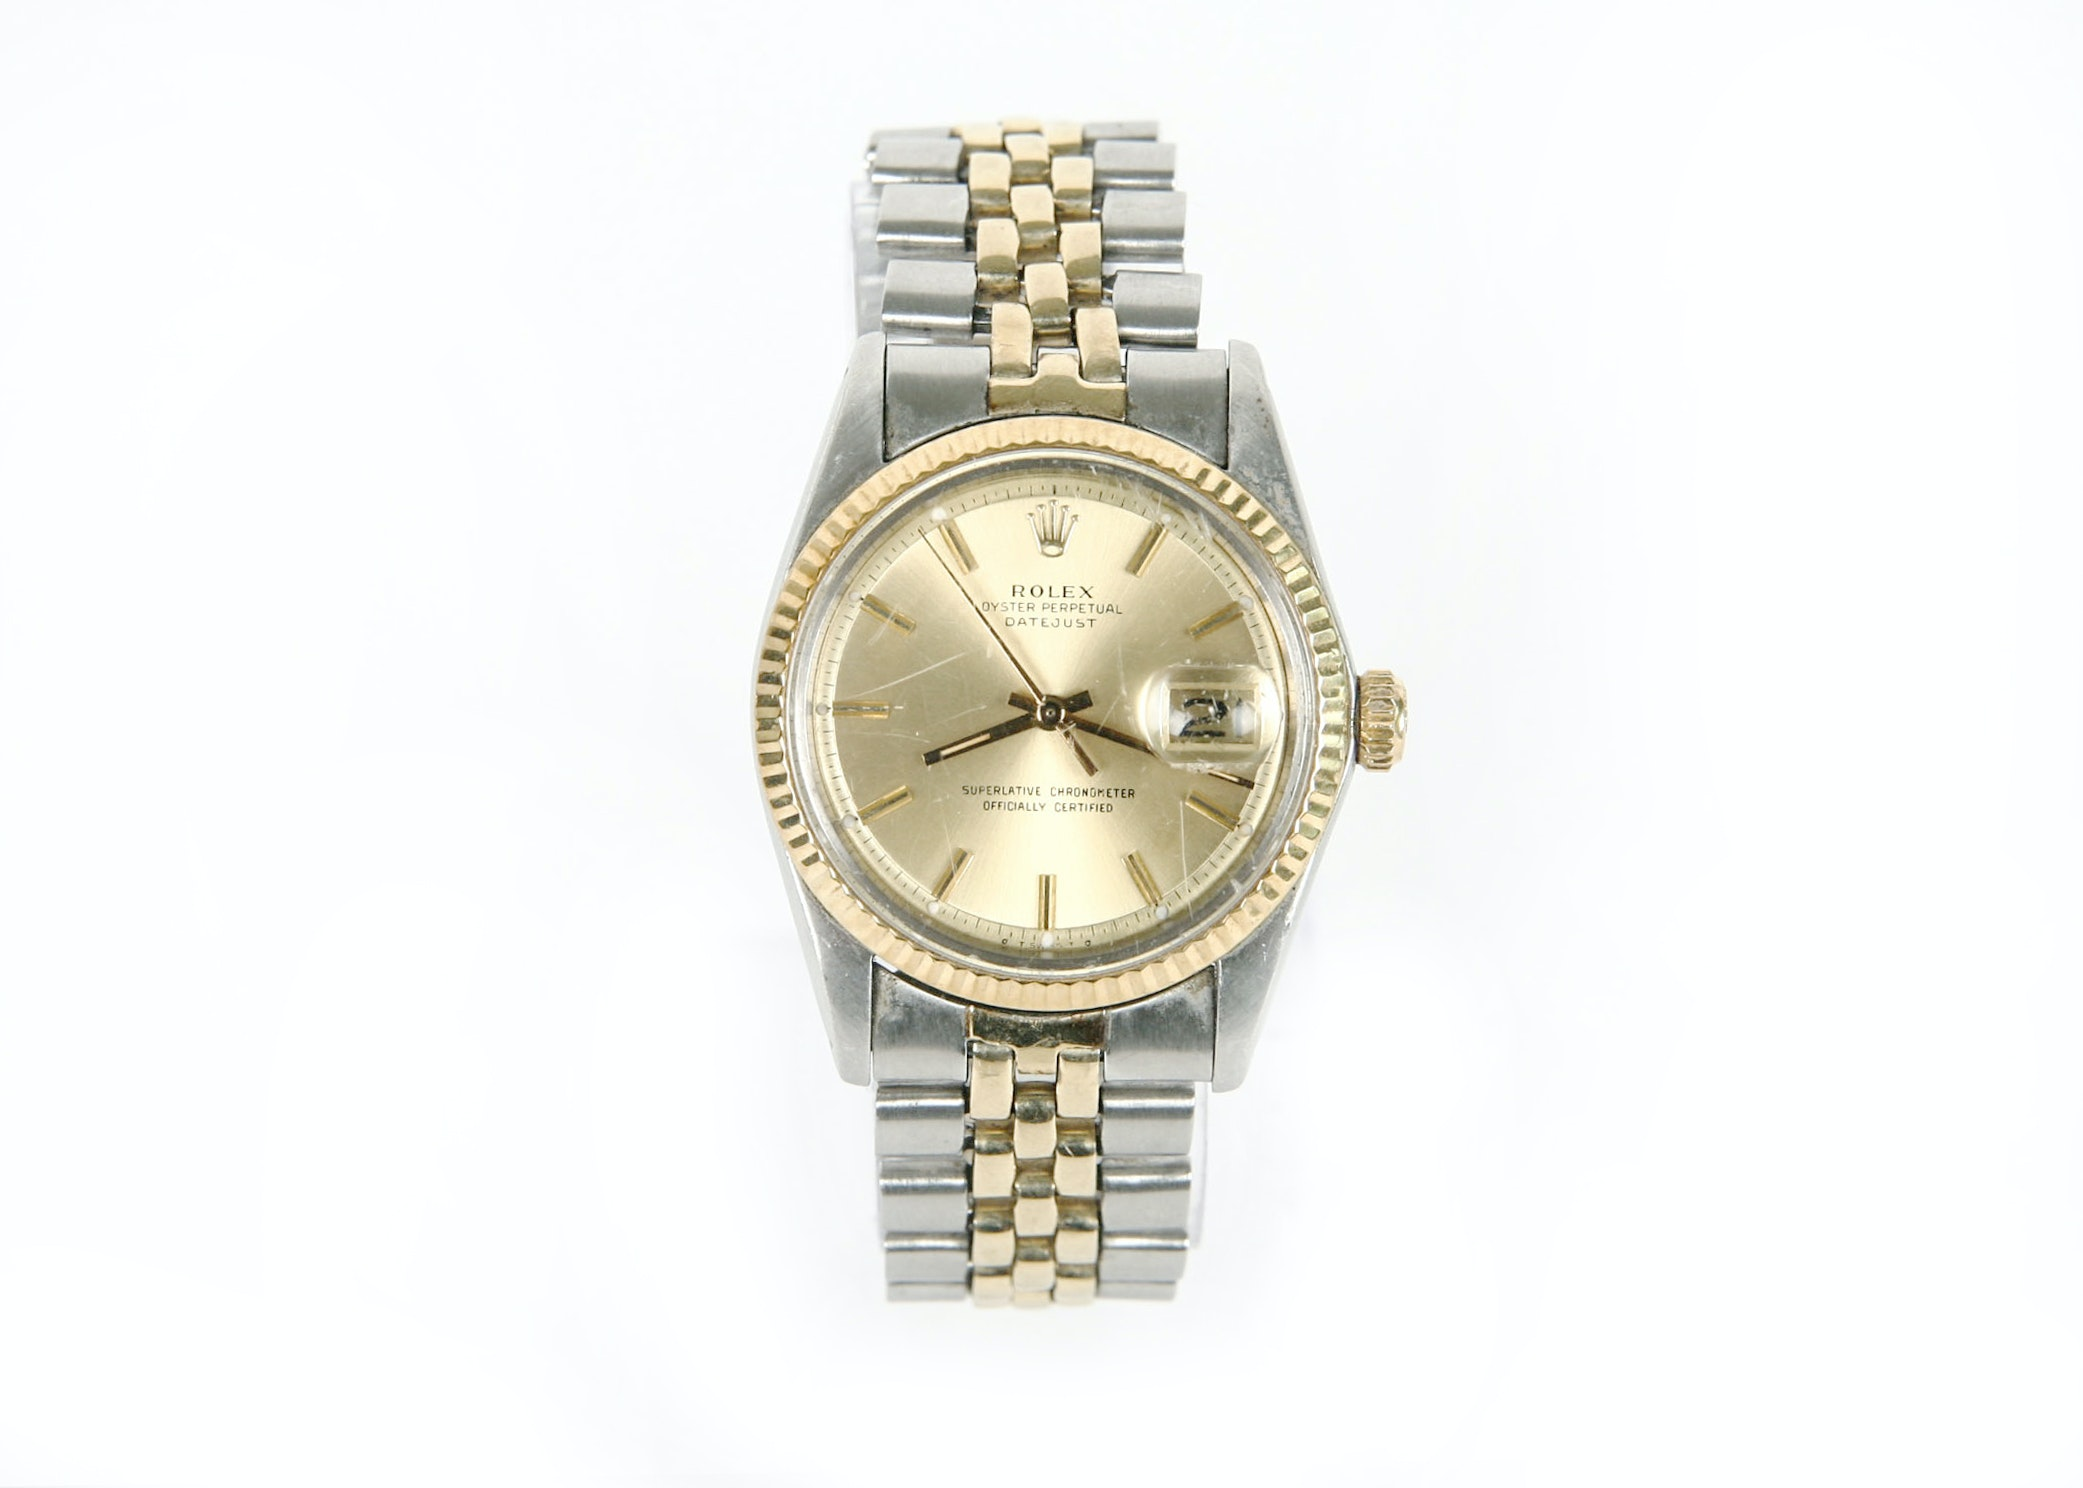 Men's Rolex Oyster Perpetual Datejust 14K Gold Trim Wristwatch